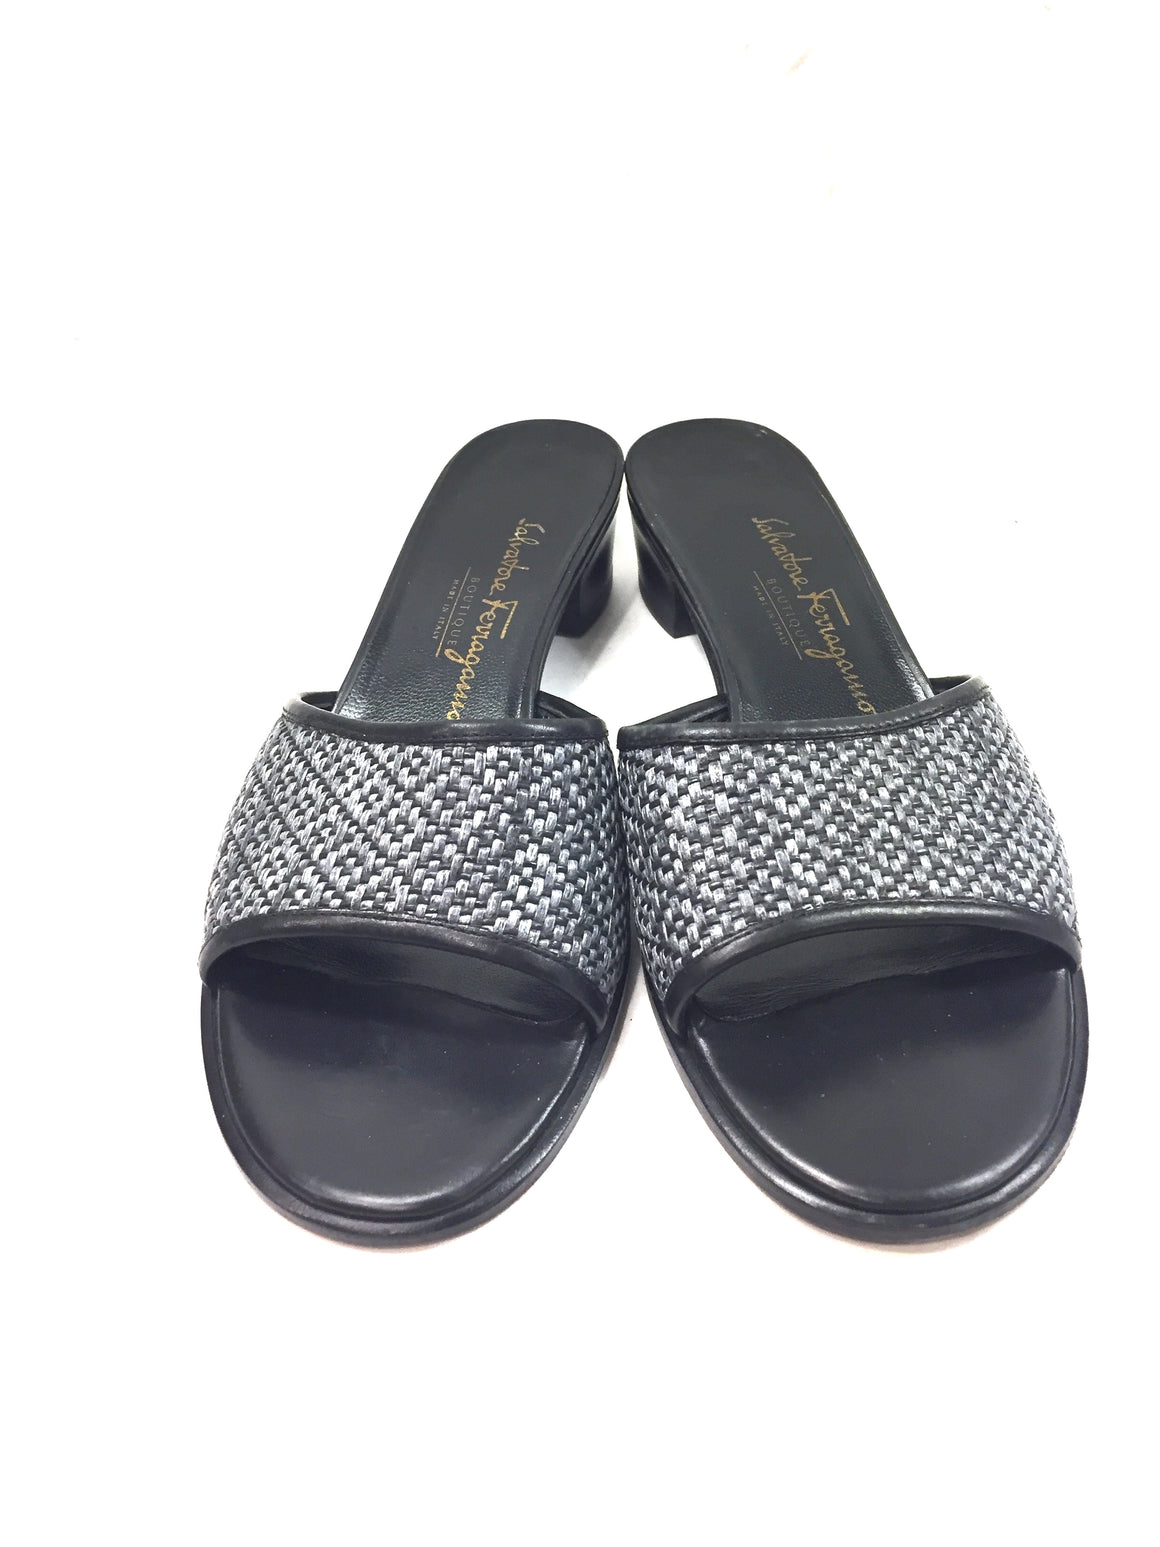 FERRAGAMO Black Leather Gray Woven Raffia Low-Heel Slides Mules Sandals Sz7.5B